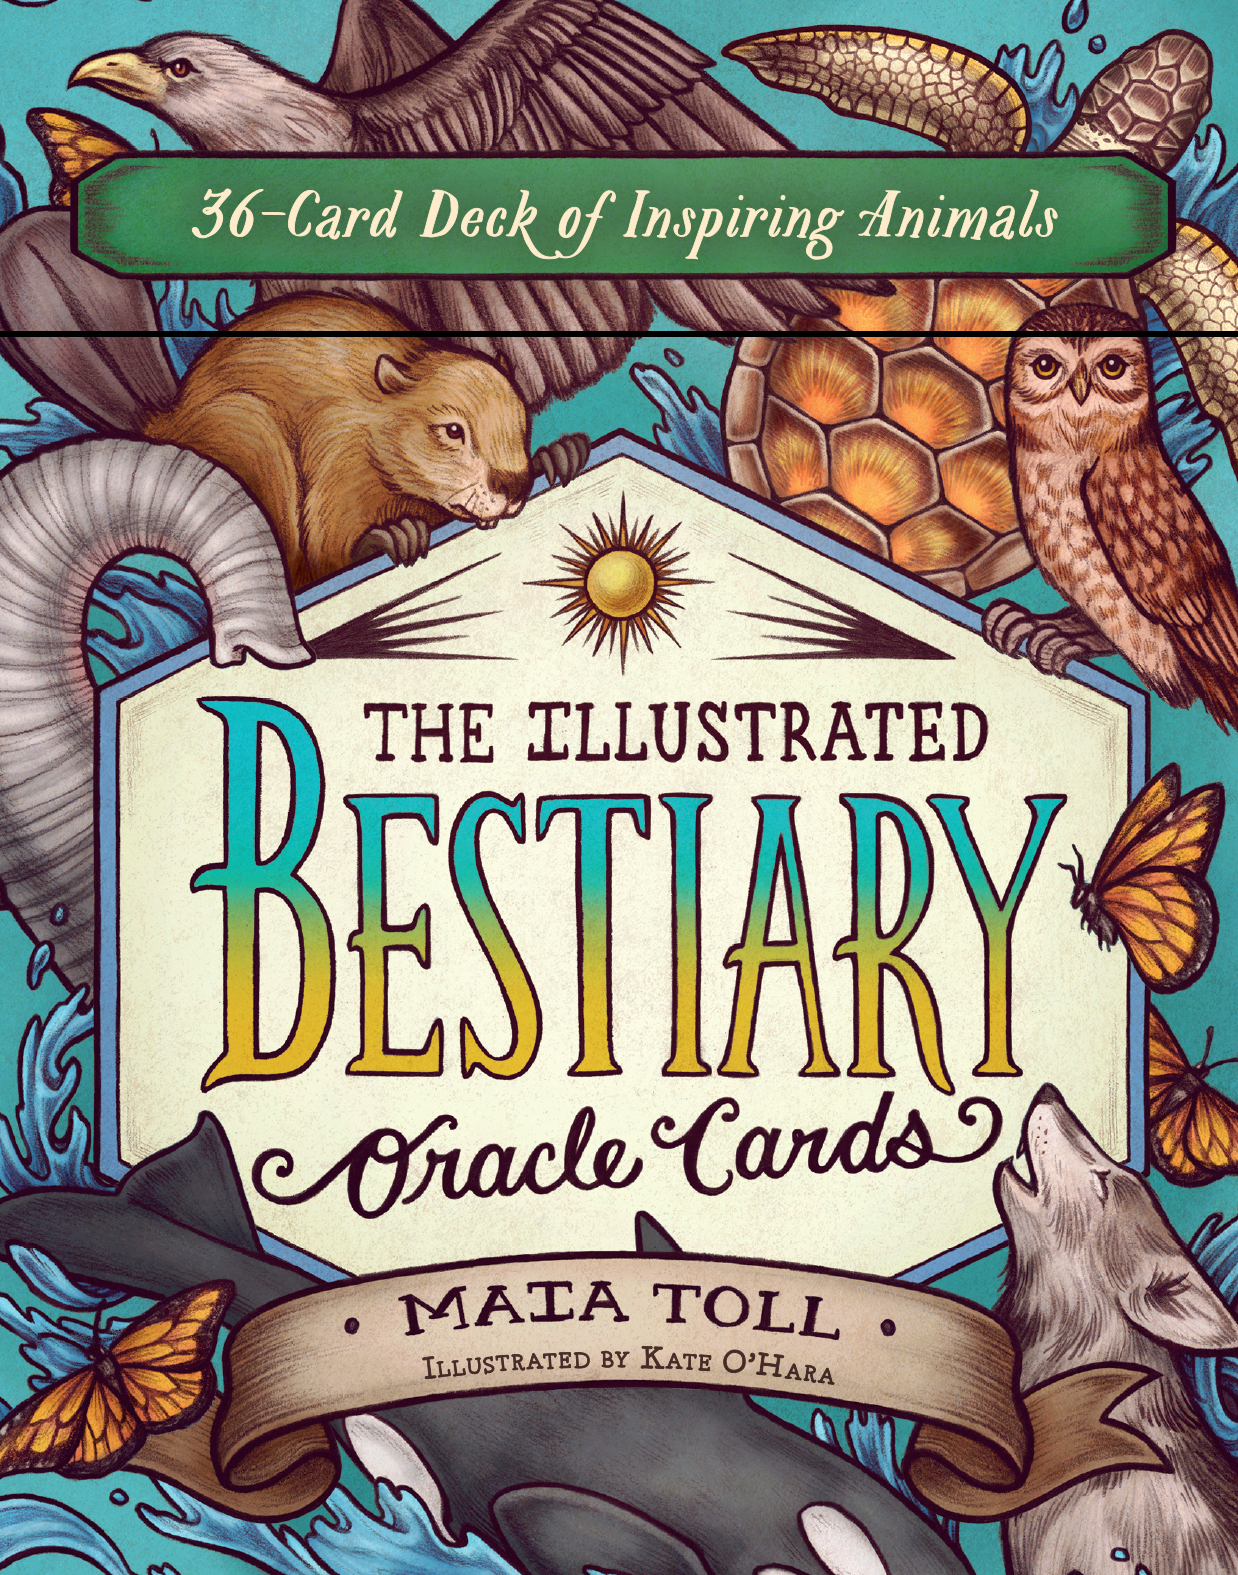 The Illustrated Bestiary Oracle Cards 36-Card Deck of Inspiring Animals - Maia Toll